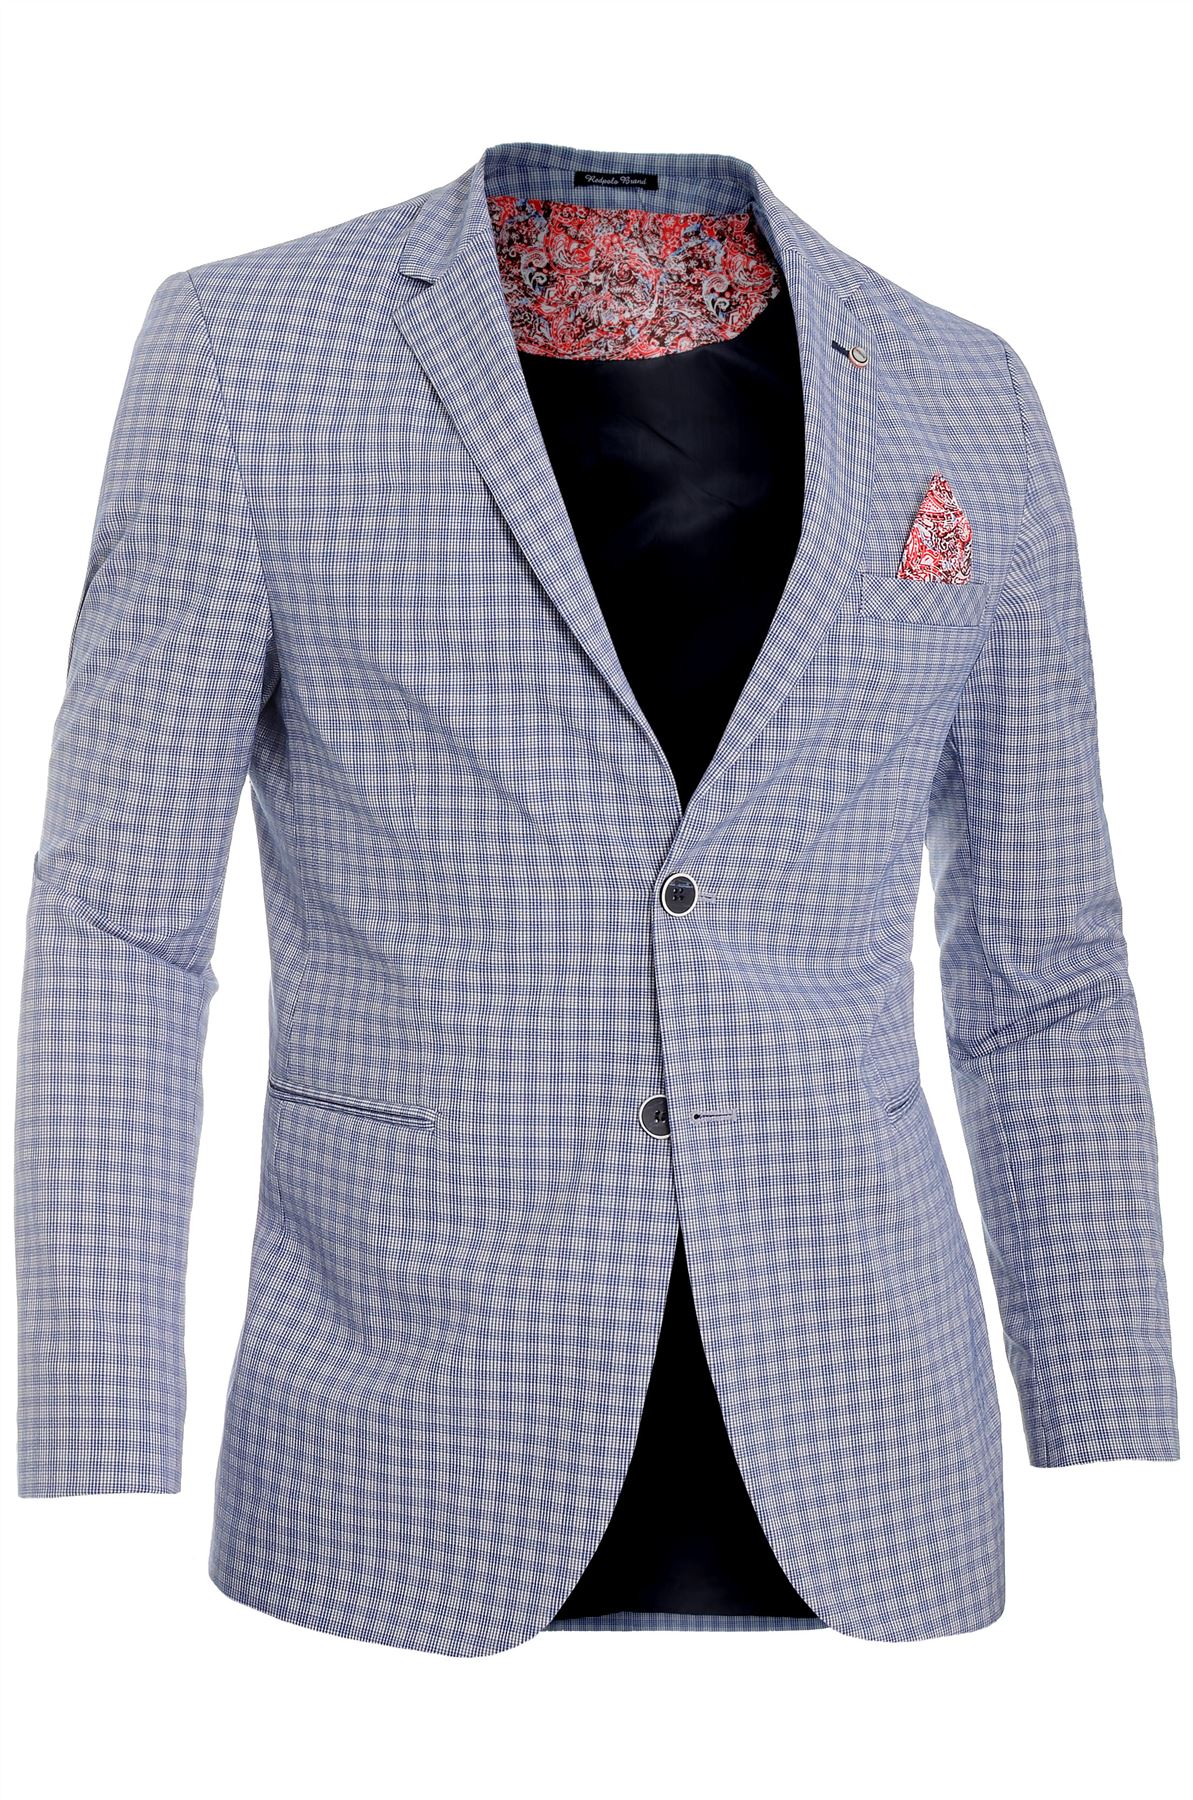 Mens-Checkered-Blazer-Jacket-Formal-Blue-Brown-Paisley-Finish-Cotton-Regular-Fit thumbnail 10